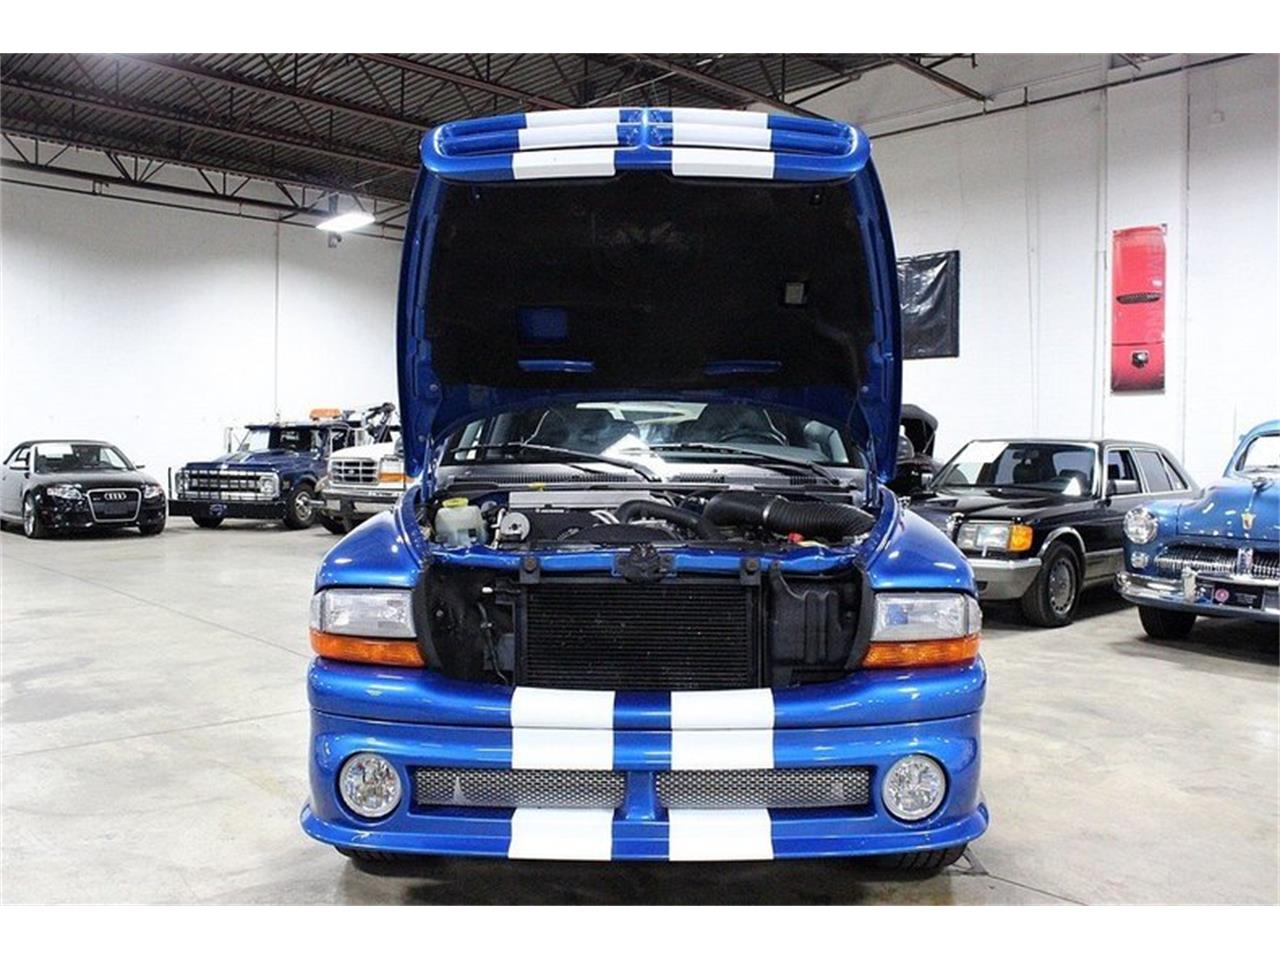 Large Picture of '99 Dodge Durango Shelby SP-360 located in Kentwood Michigan - $31,900.00 - MB1Y